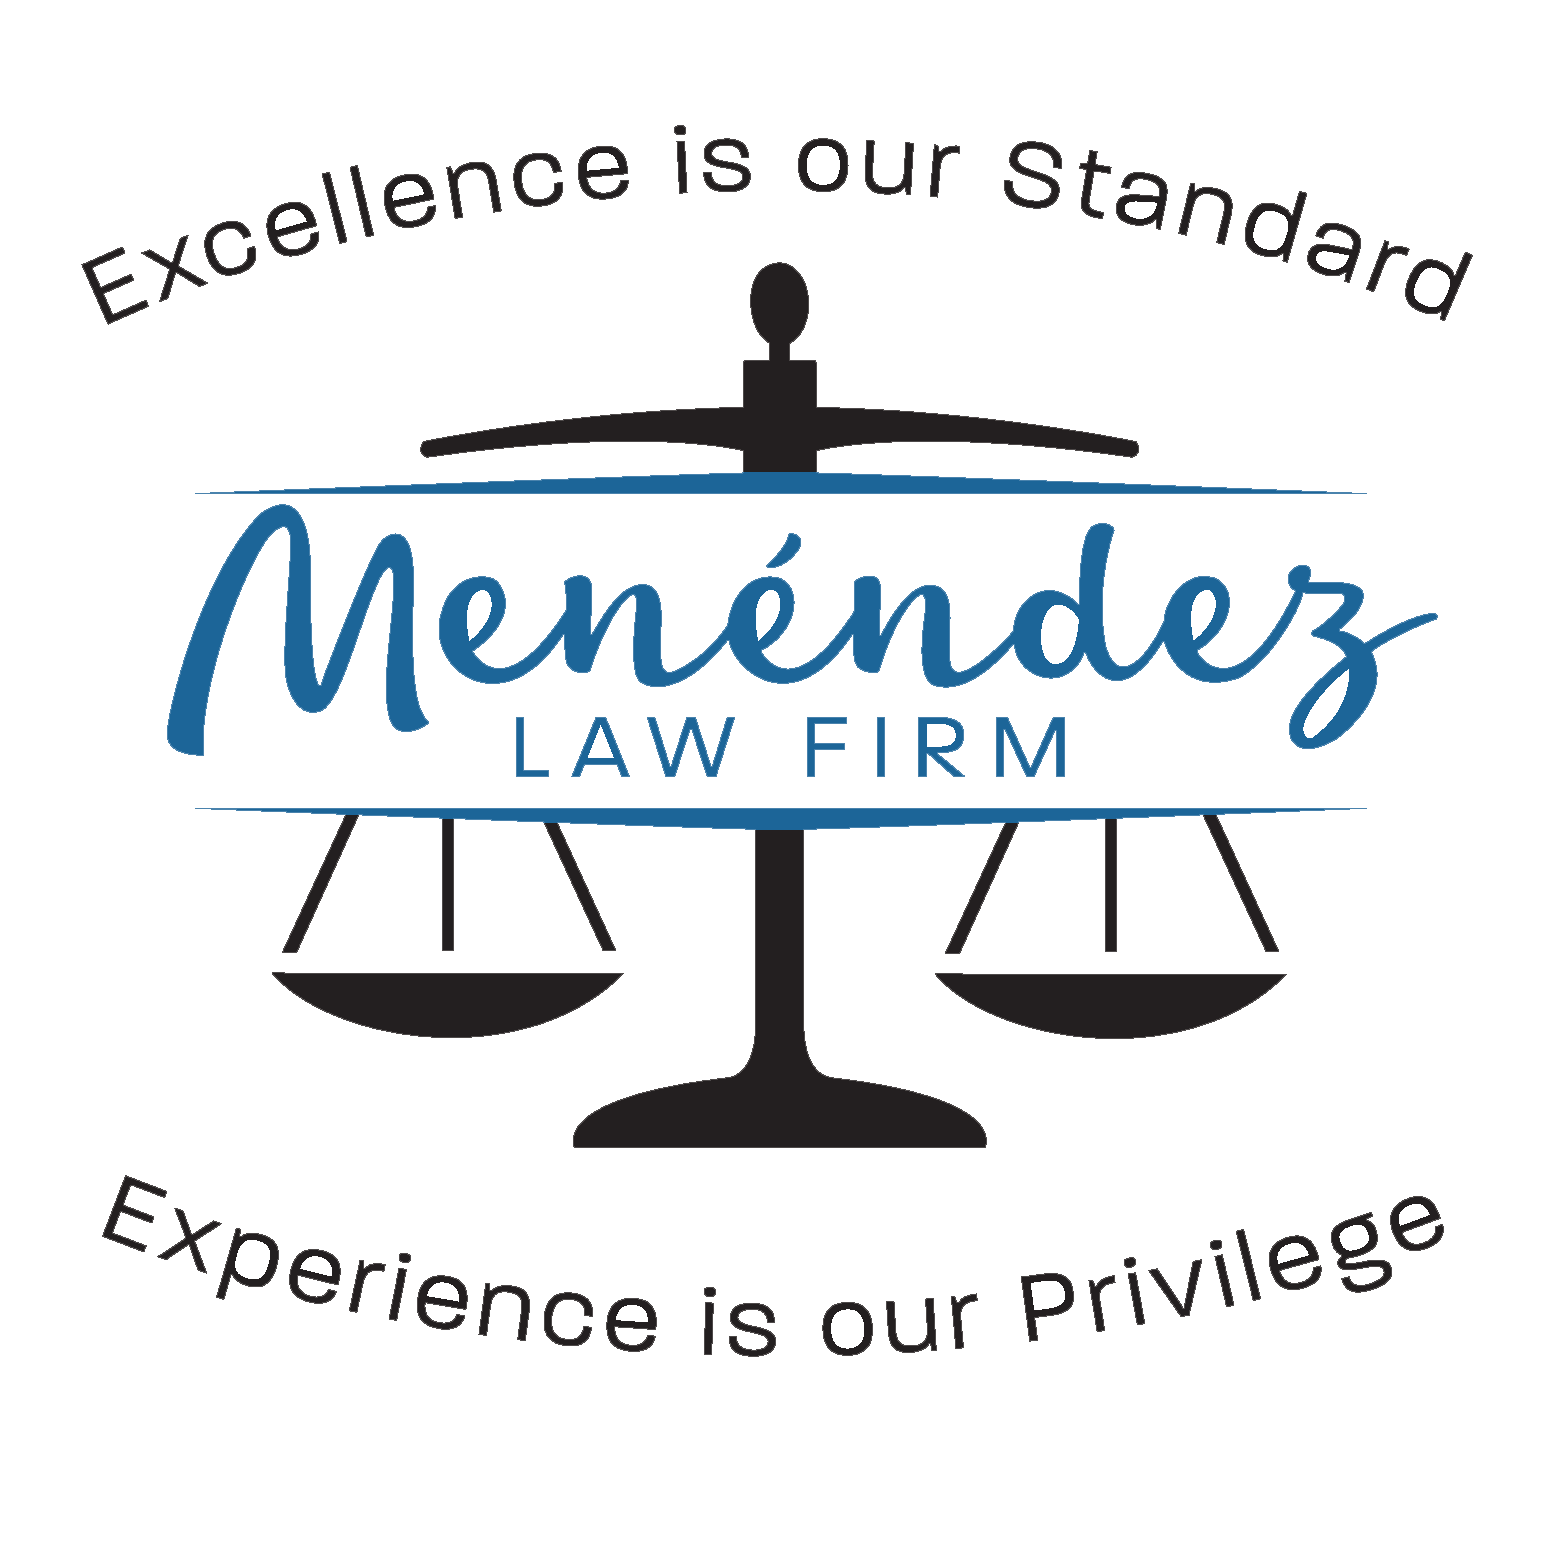 Menendez Law Firm